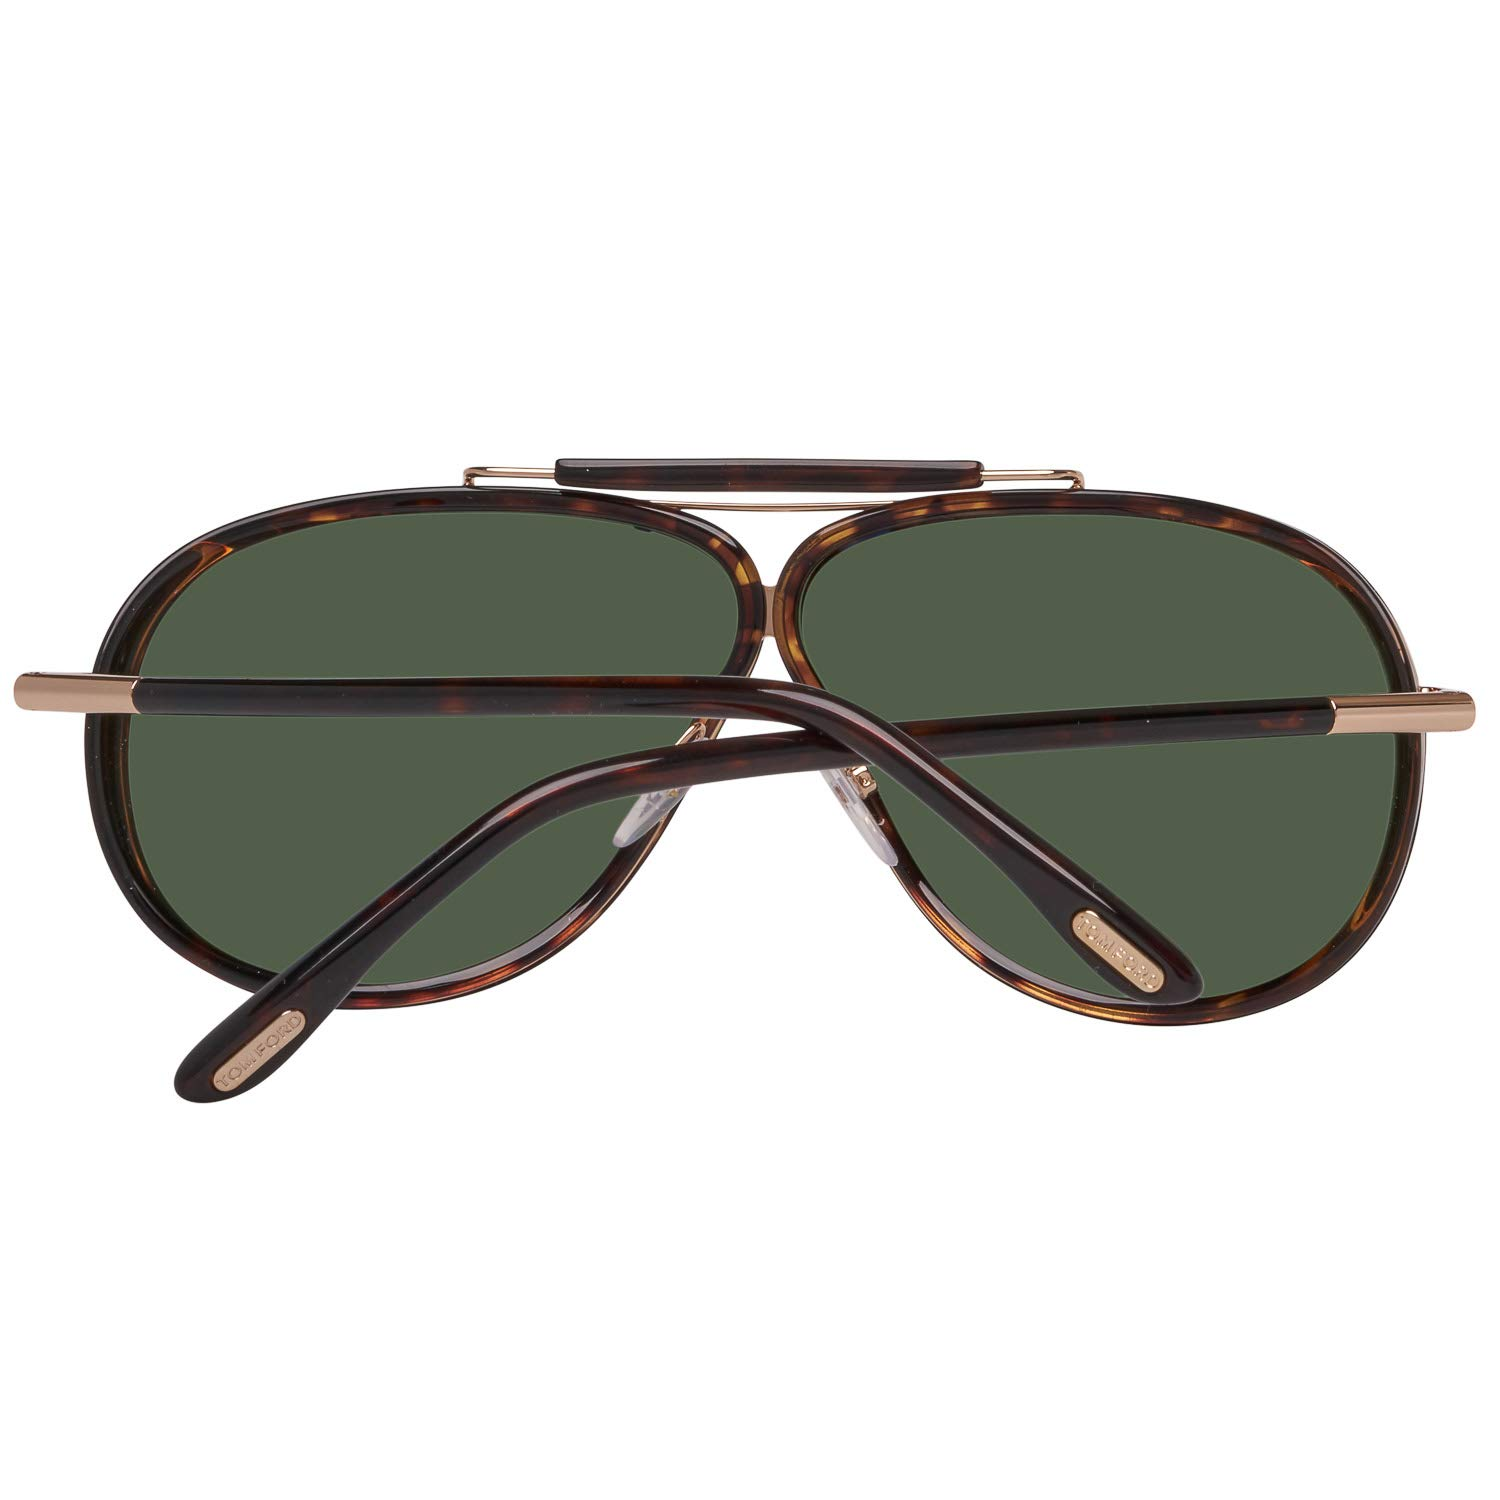 e061a8370be Tom Ford Sunglasses 0509 Cedric 52N Dark Havana Green at Amazon Men s  Clothing store